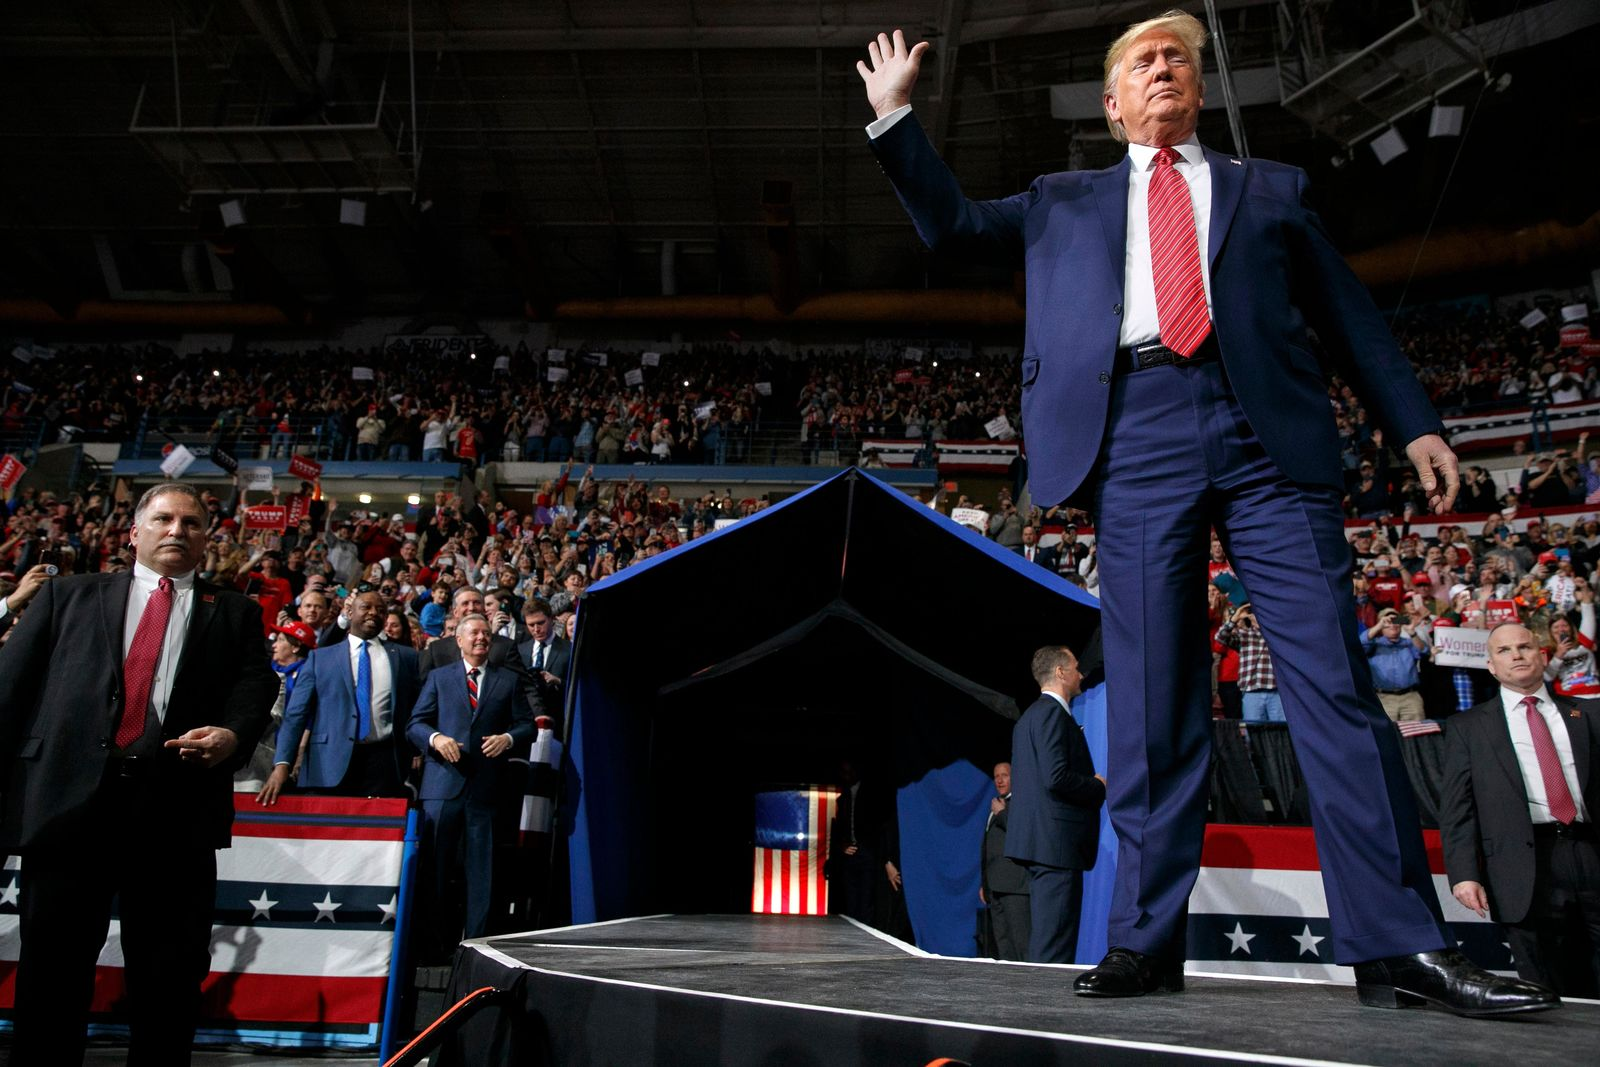 President Donald Trump waves as he arrives in North Charleston, S.C., for a campaign rally, Friday Feb. 28, 2020. Attending the rally are Sen. Lindsey Graham, R-S.C., center, and Sen. Tim Scott, R-S.C., left. (AP Photo/Jacquelyn Martin)